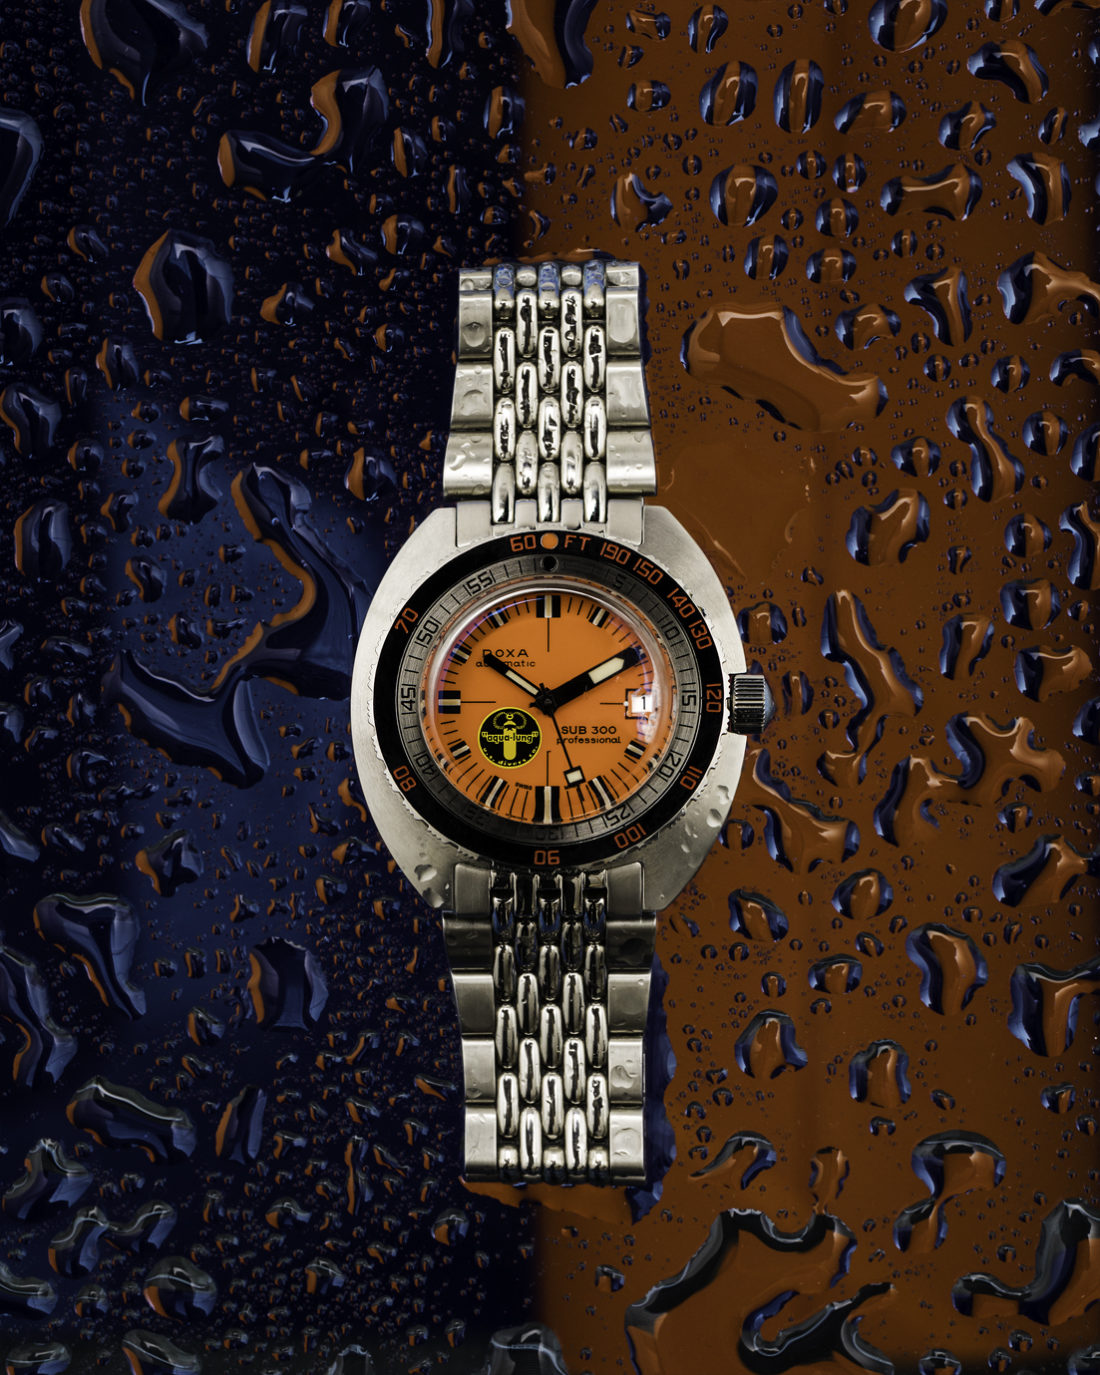 """Announcing: DOXA Sub 300 """"Black Lung"""" Re-StockX"""